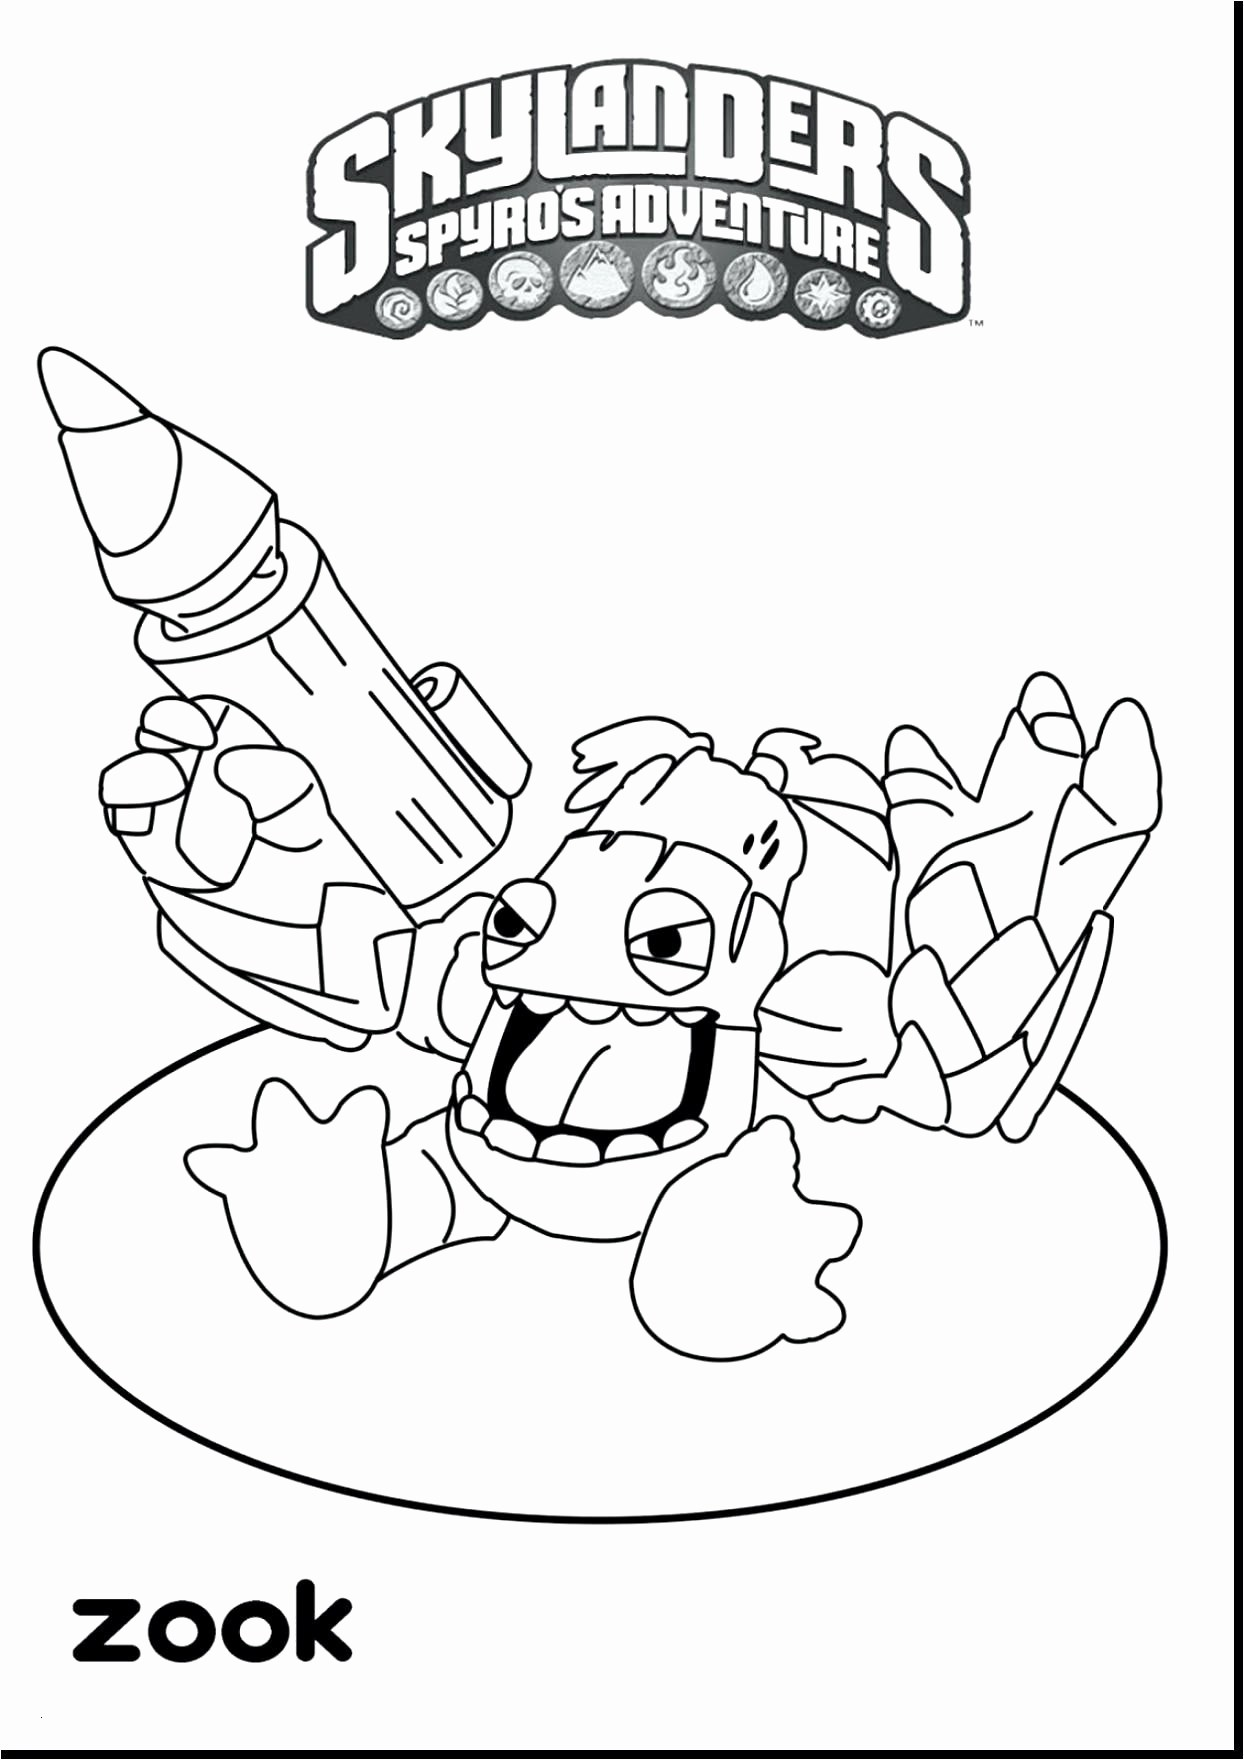 Christmas Coloring Pages For Elderly With Older Adults Cartoon 21csb